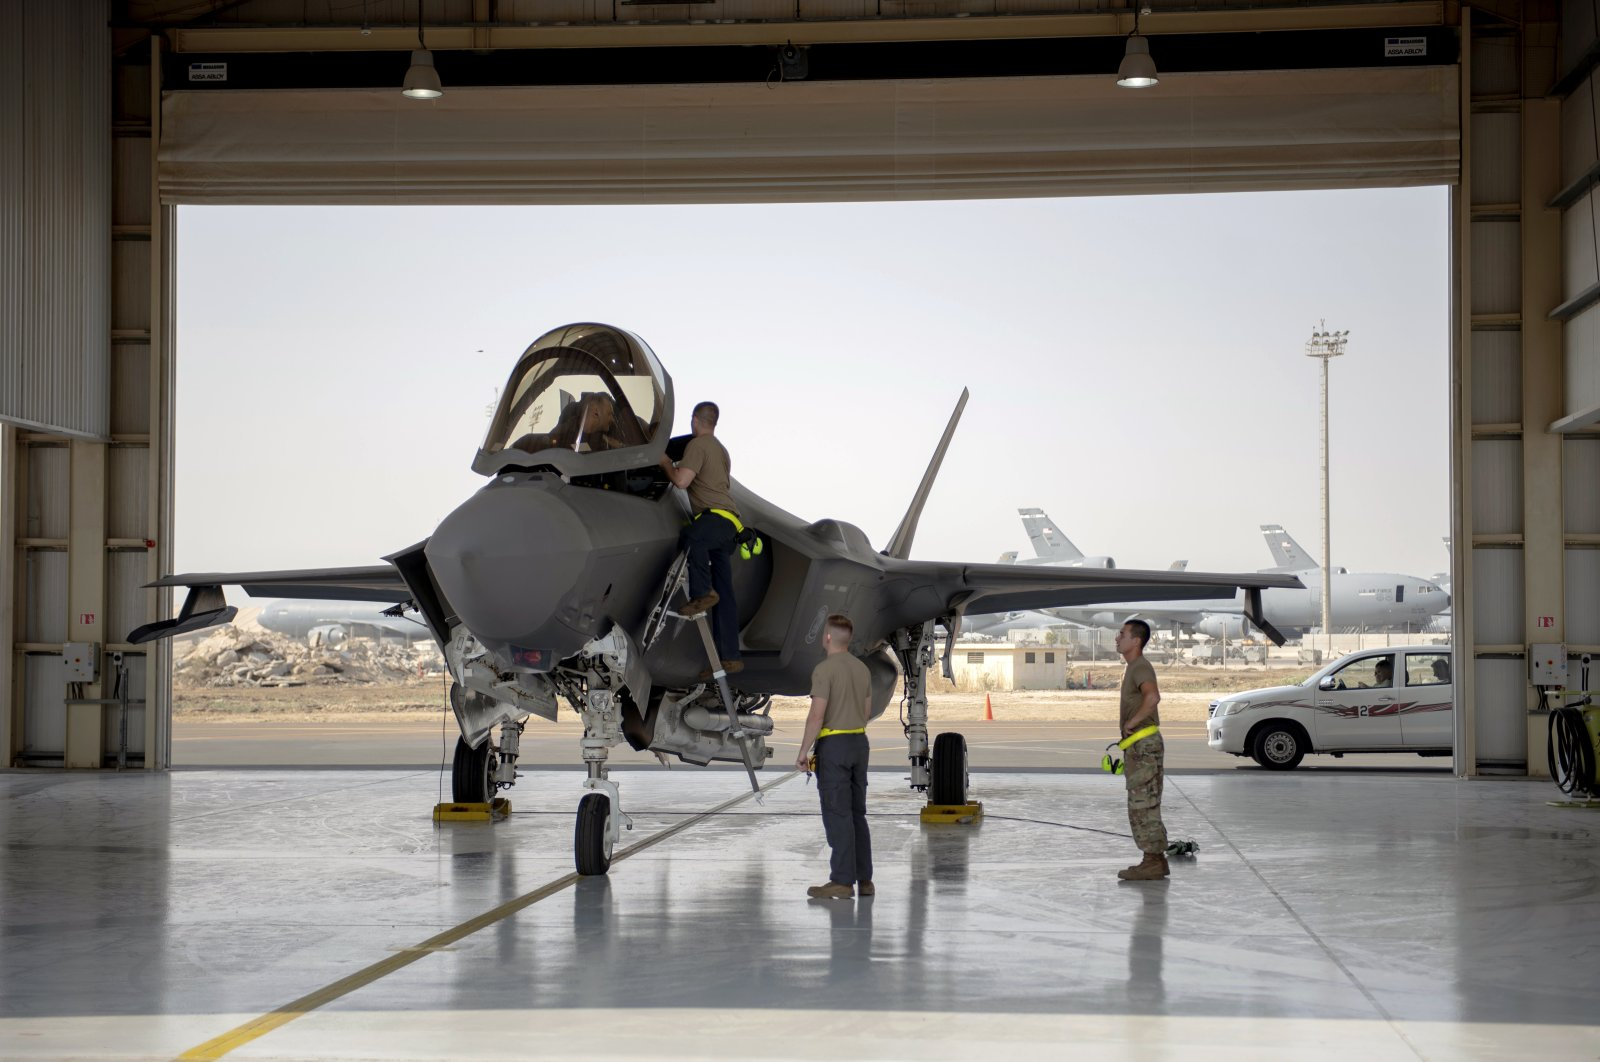 In this photo released by the U.S. Air Force, an F-35 fighter jet pilot and crew prepare for a mission at Al-Dhafra Air Base in the United Arab Emirates, Aug. 5, 2019. (AP Photo)